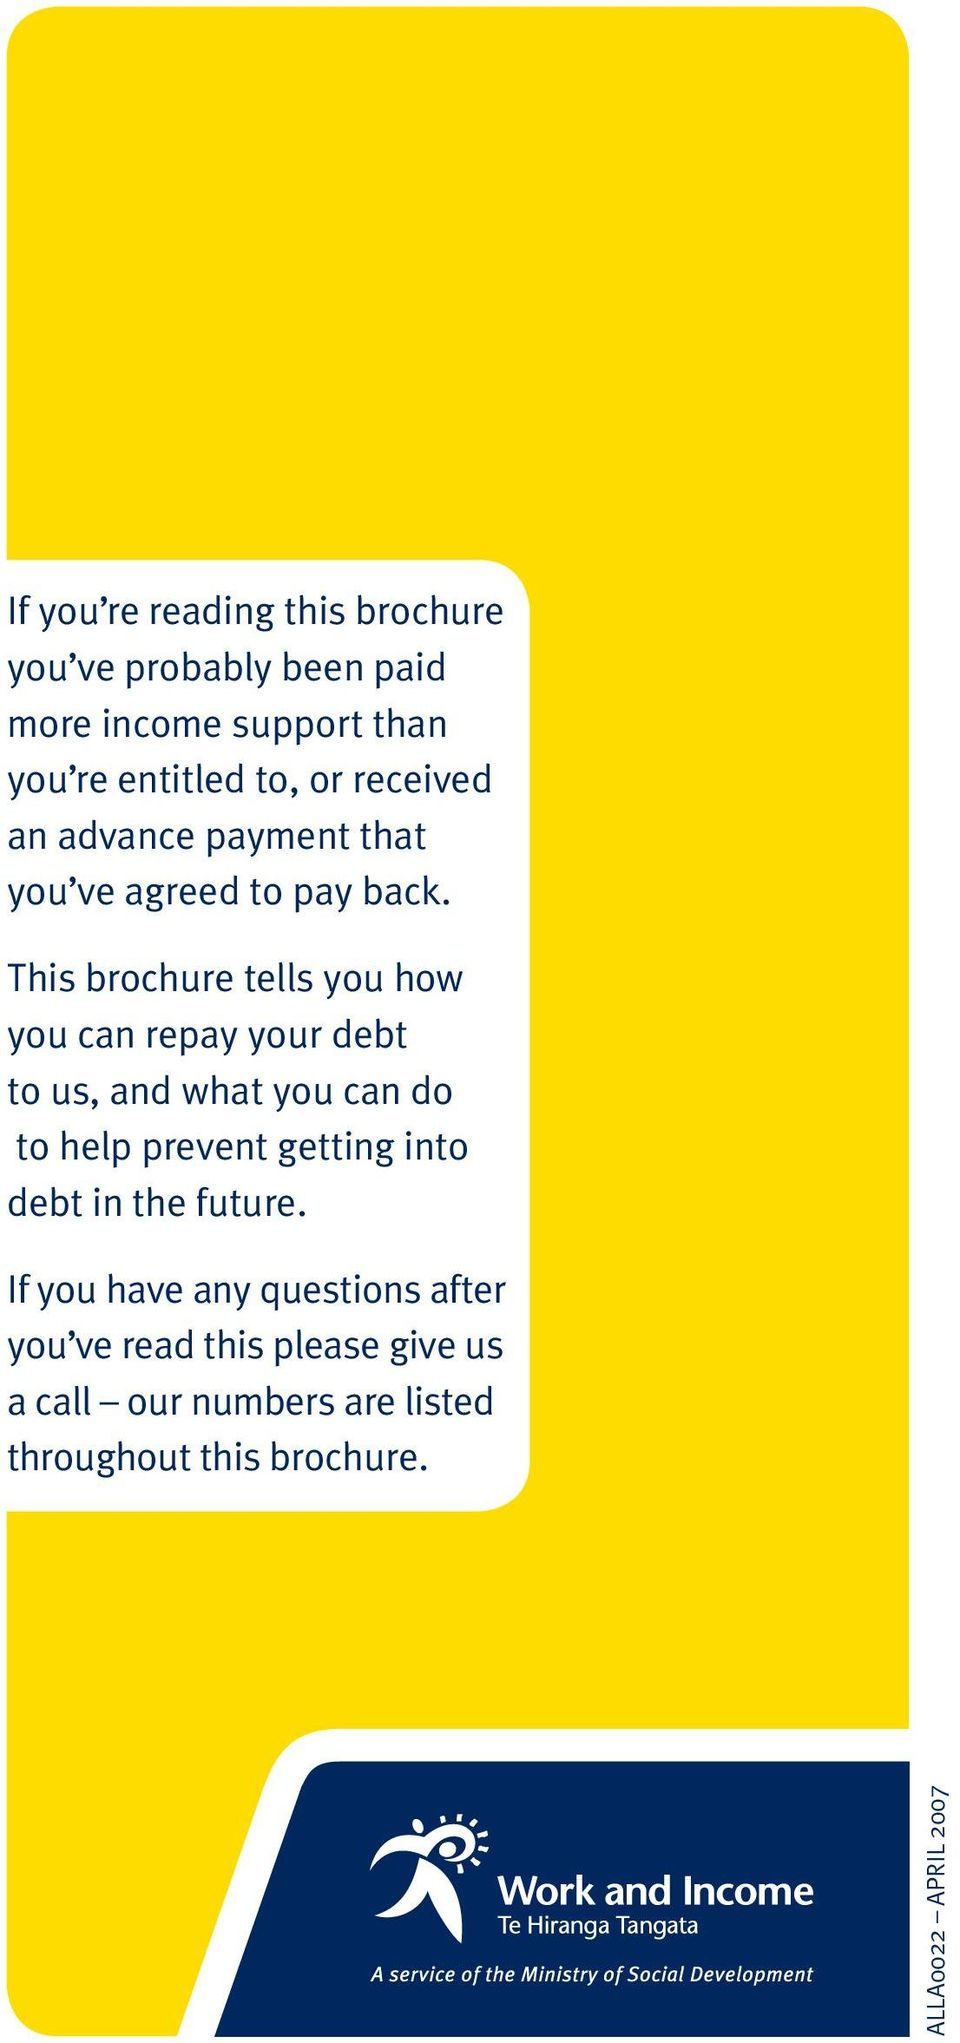 This brochure tells you how you can repay your debt to us, and what you can do to help prevent getting into